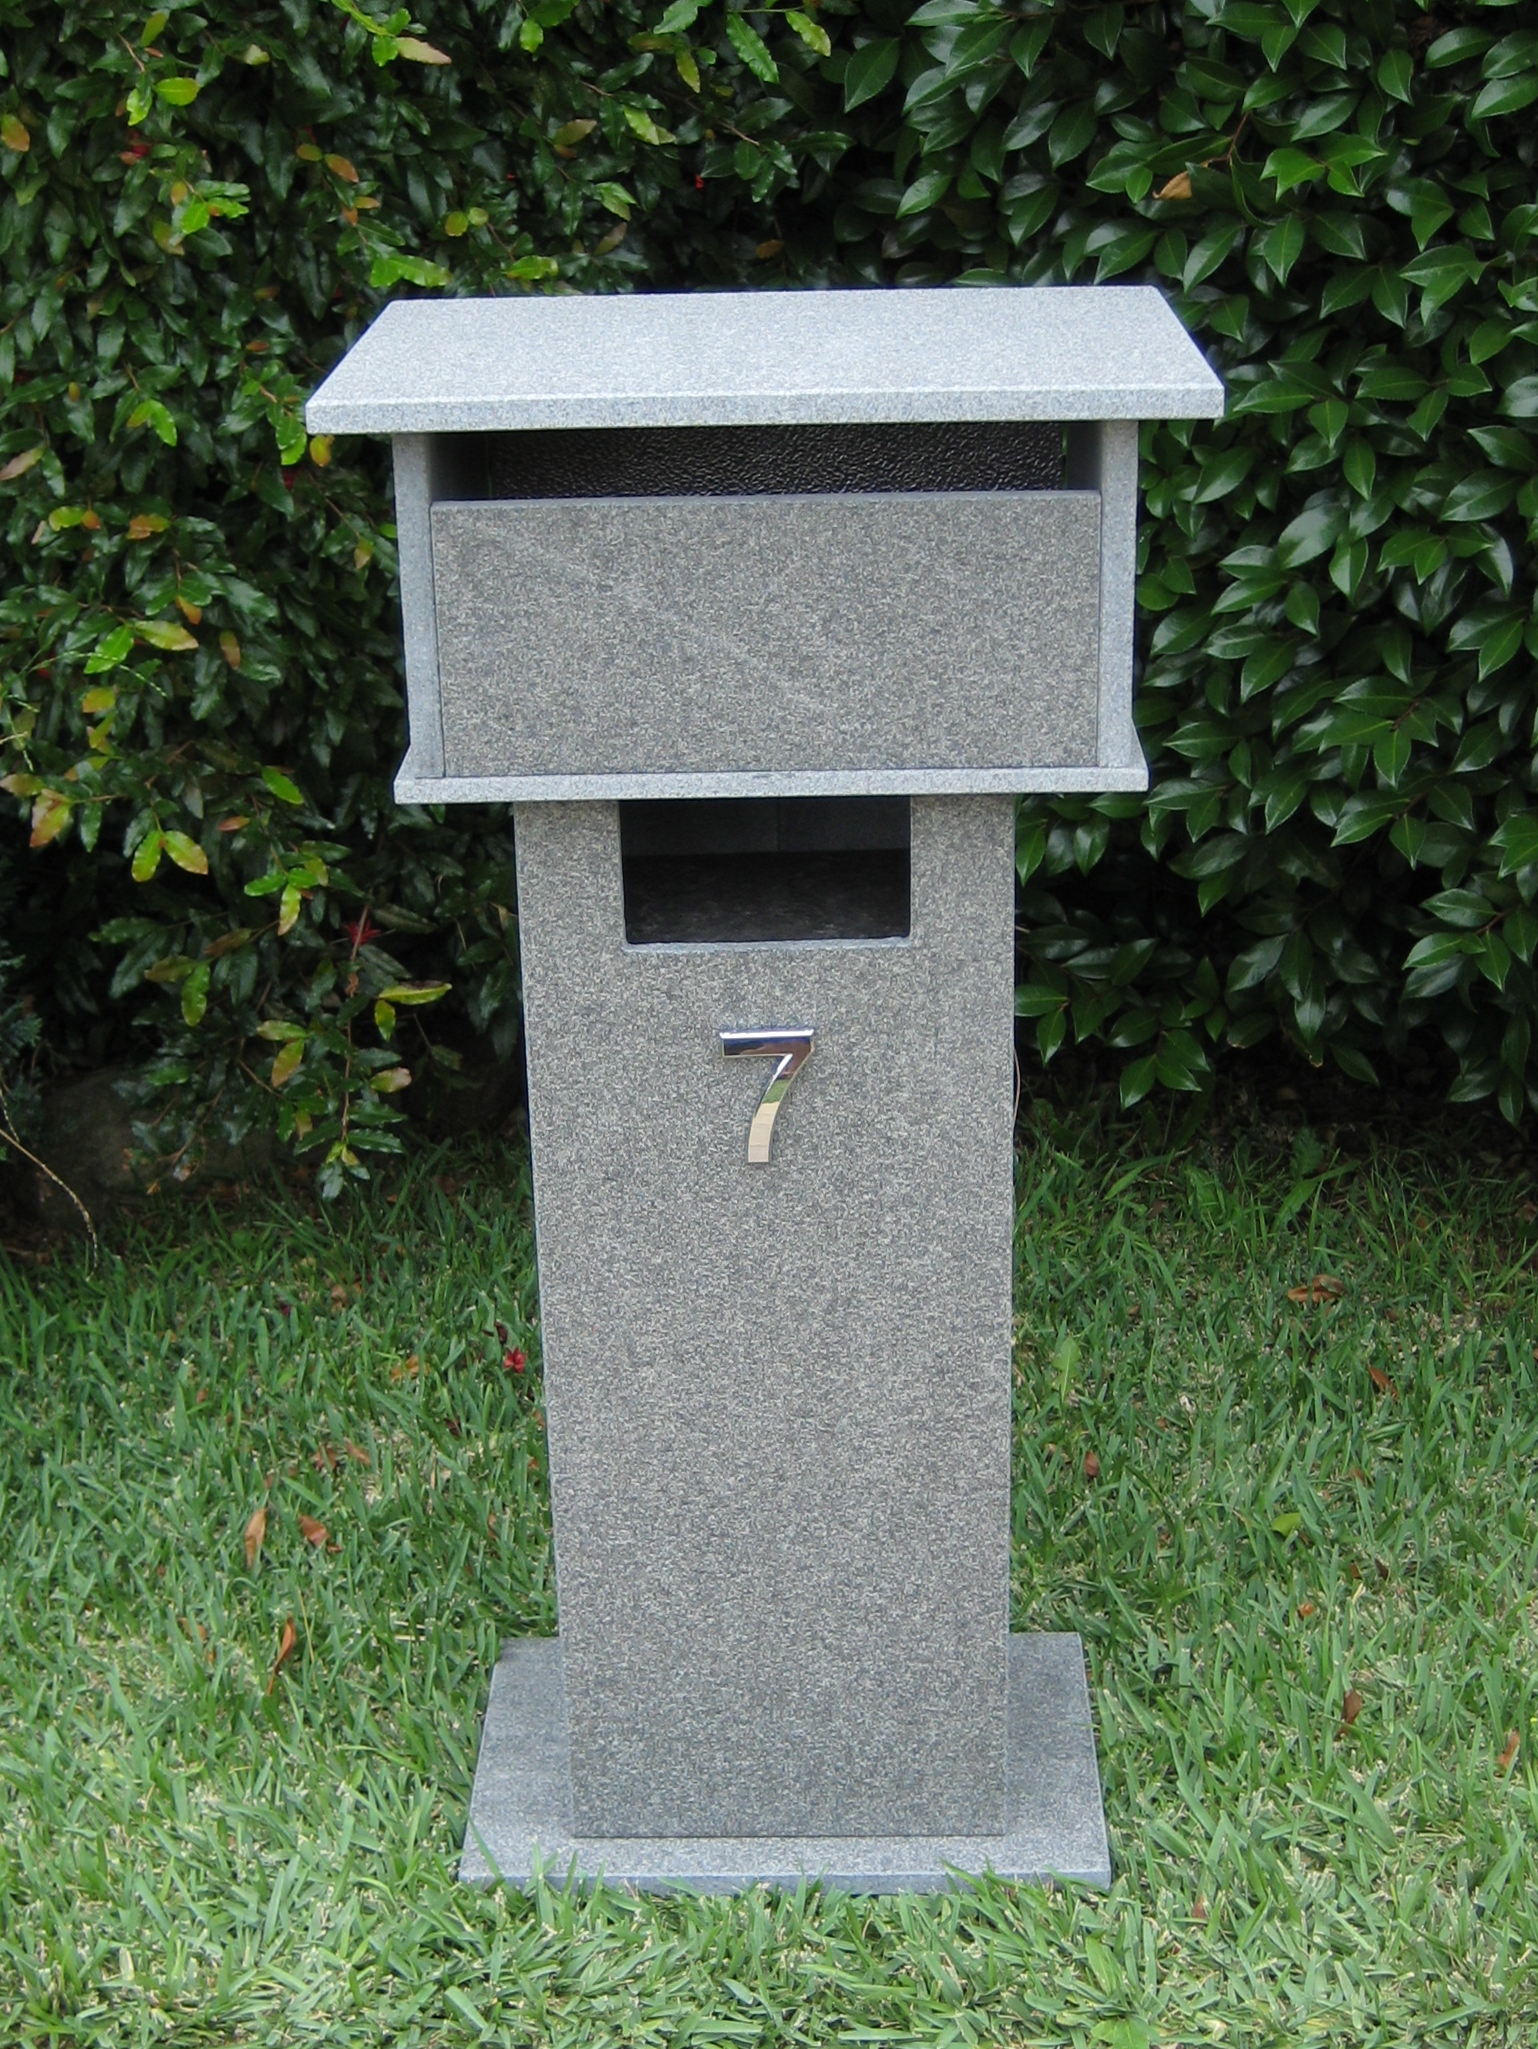 8. Blue stone letterbox with bushhammered finish. Back 2 key aluminium door. Tough material. Sizes 820x400x300 $620